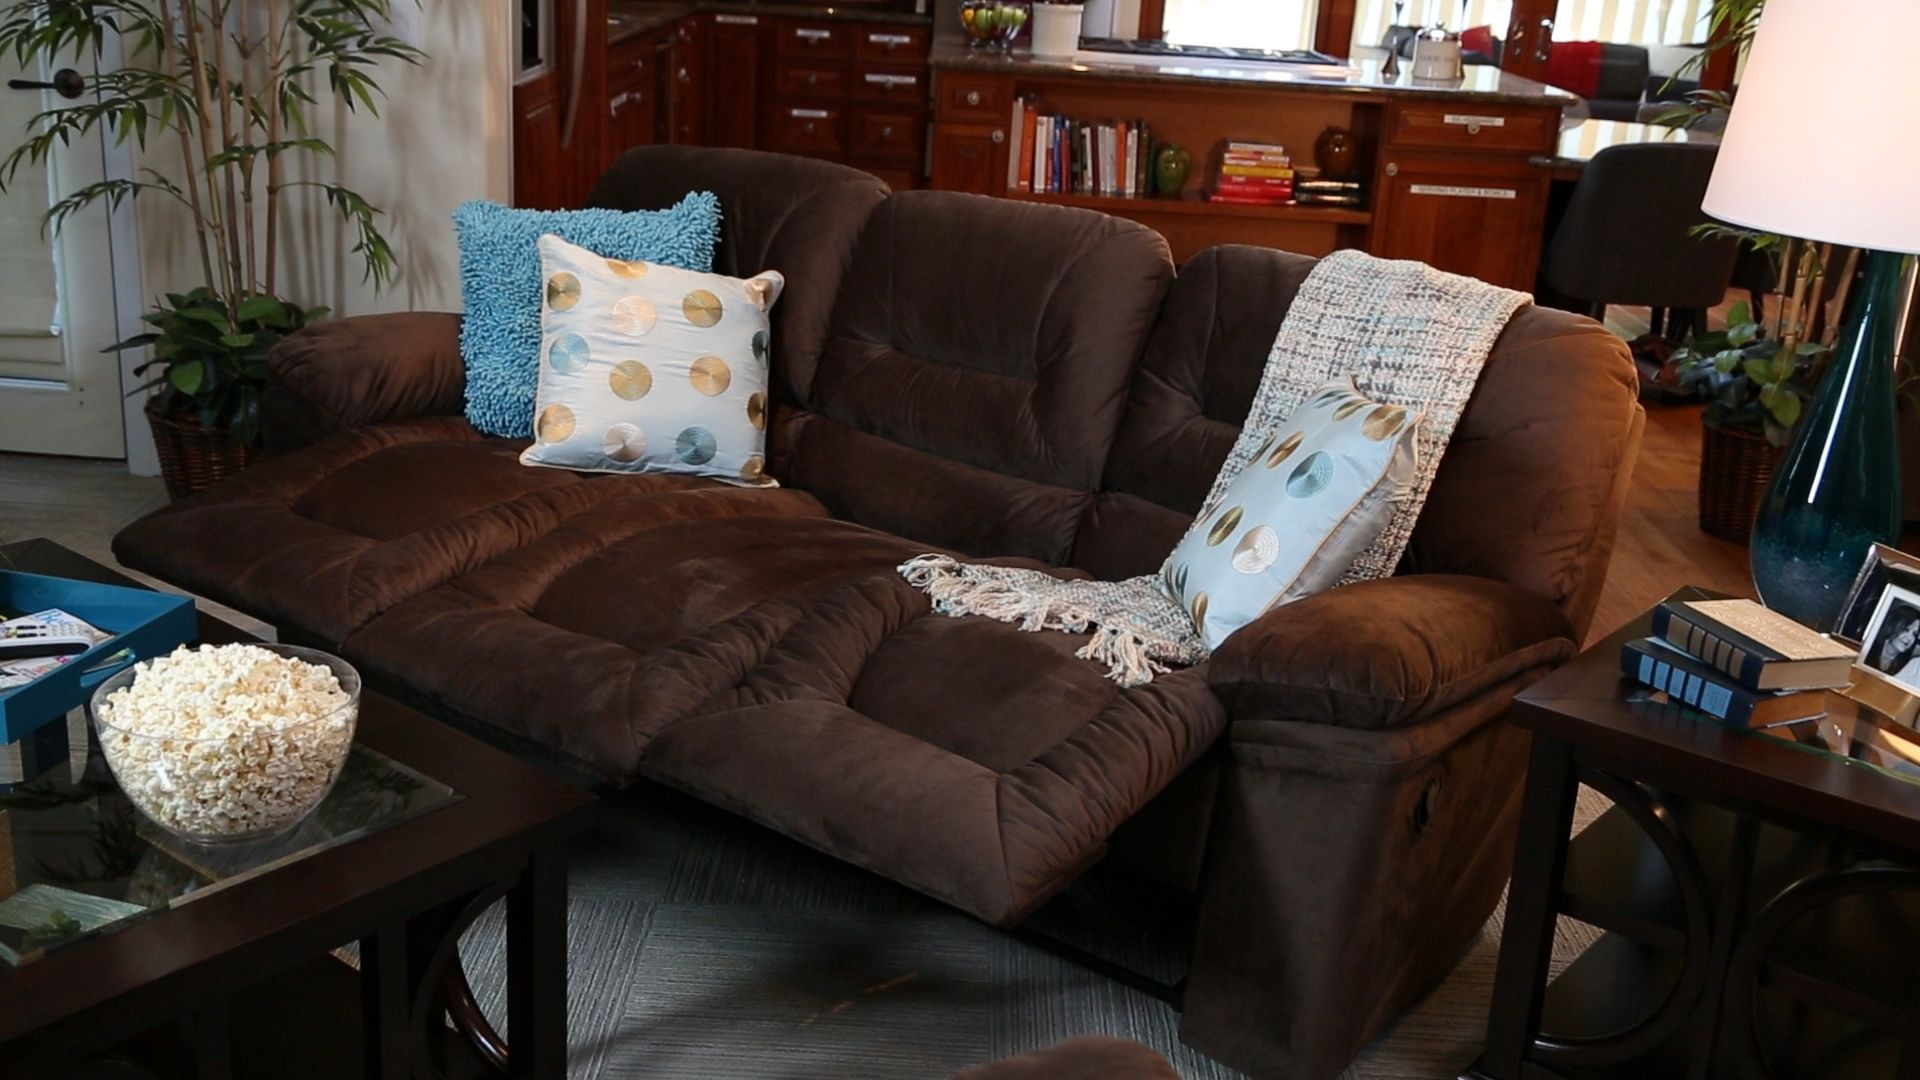 Make your house the favorite with our Dawson leather sectional